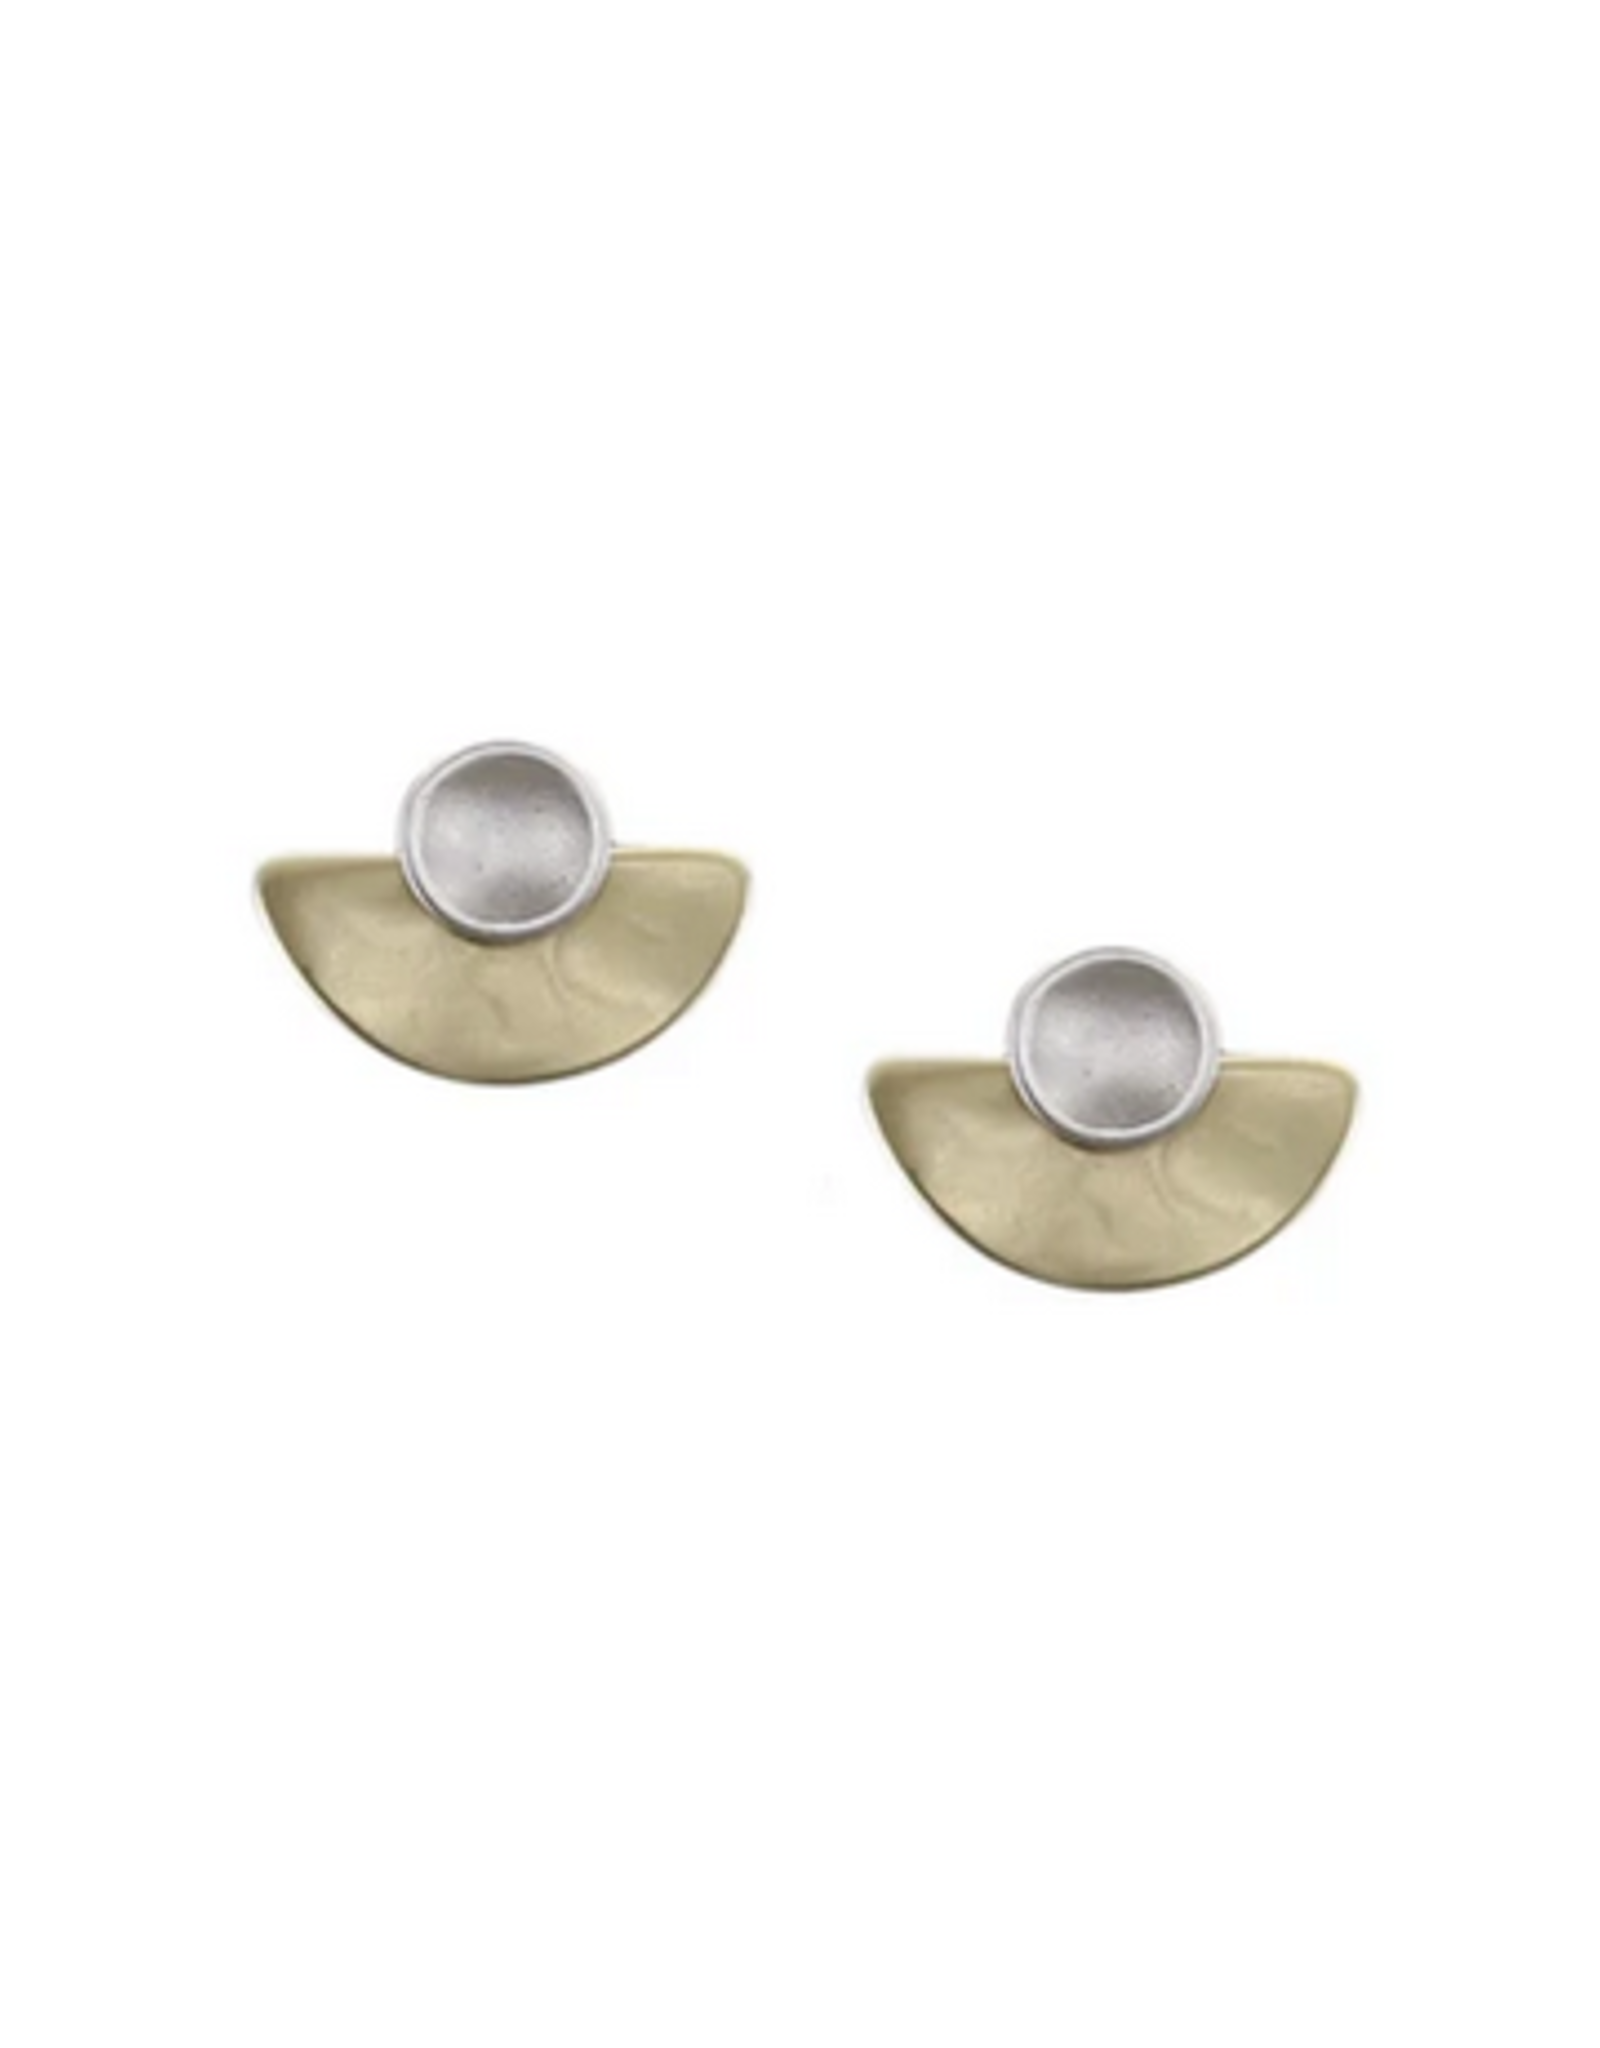 Marjorie Bear Marjorie Bear Jewelry Small Dished Disc with Semi Circle Post Earring